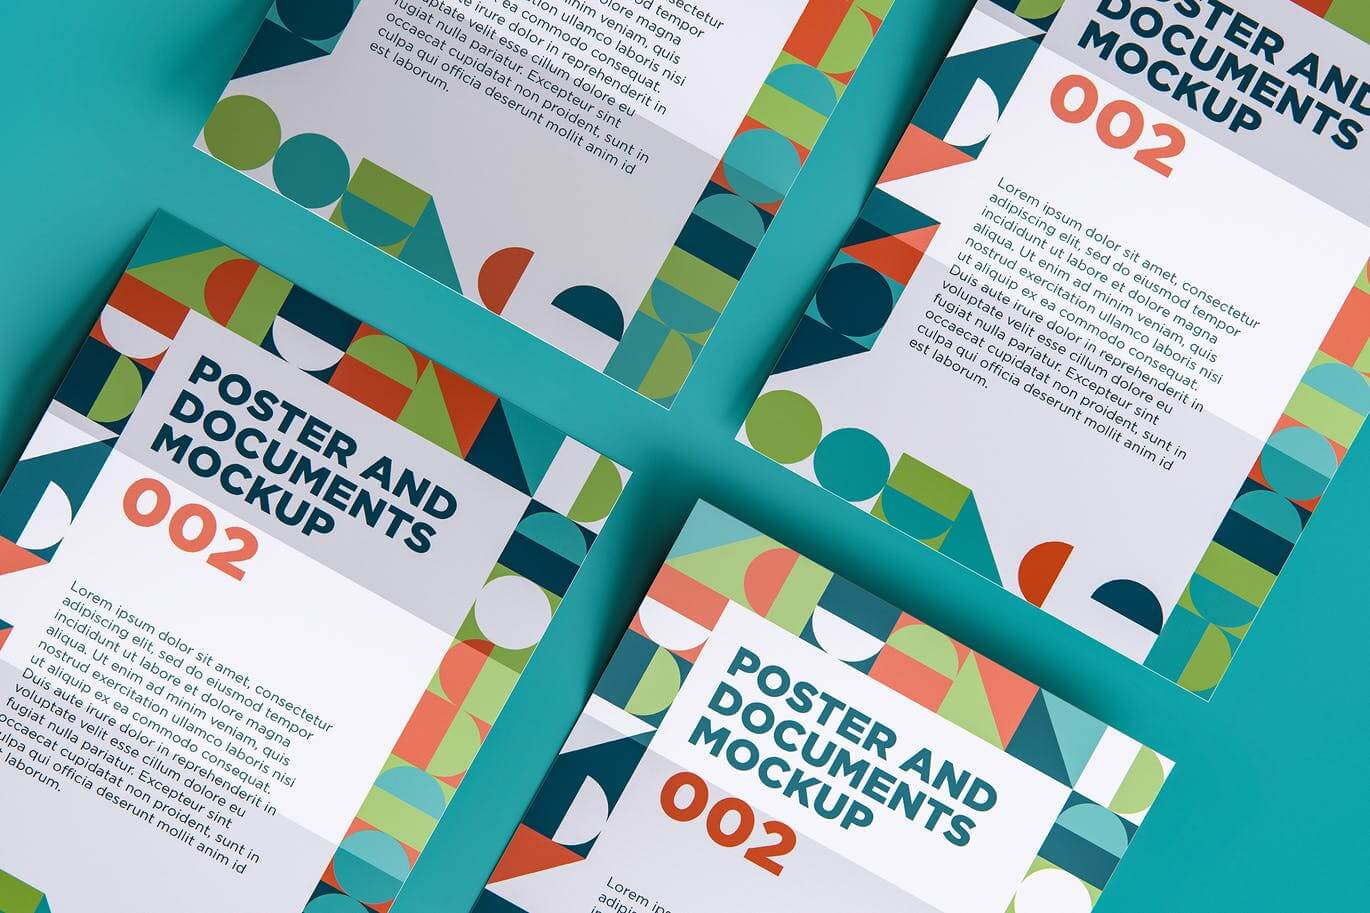 Poster And Documents Mockup 002